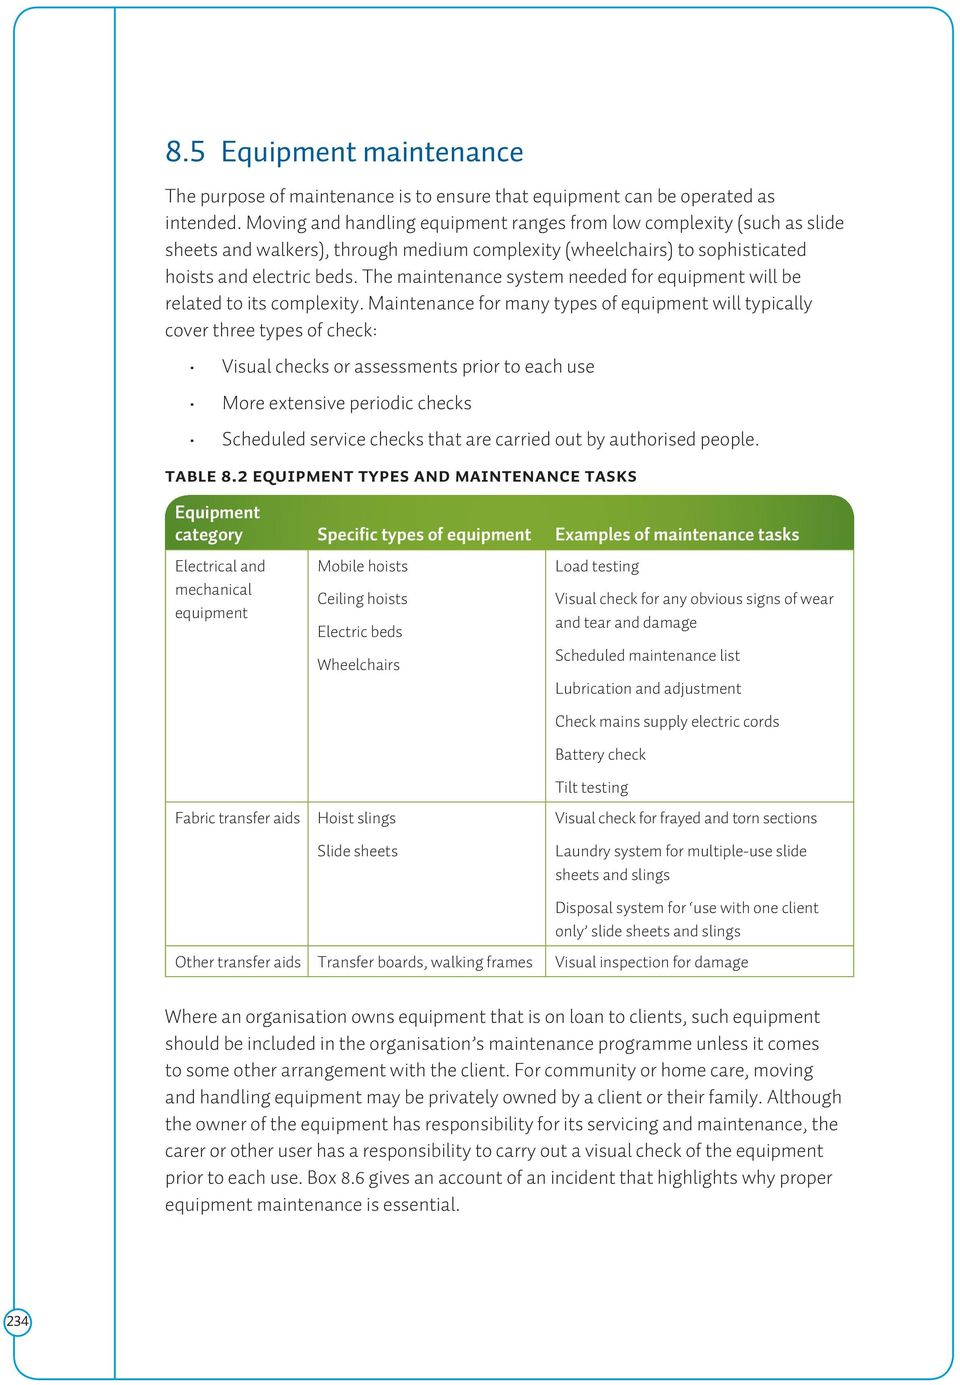 Equipment management section 8 contents pdf the maintenance system needed for equipment will be related to its complexity fandeluxe Choice Image